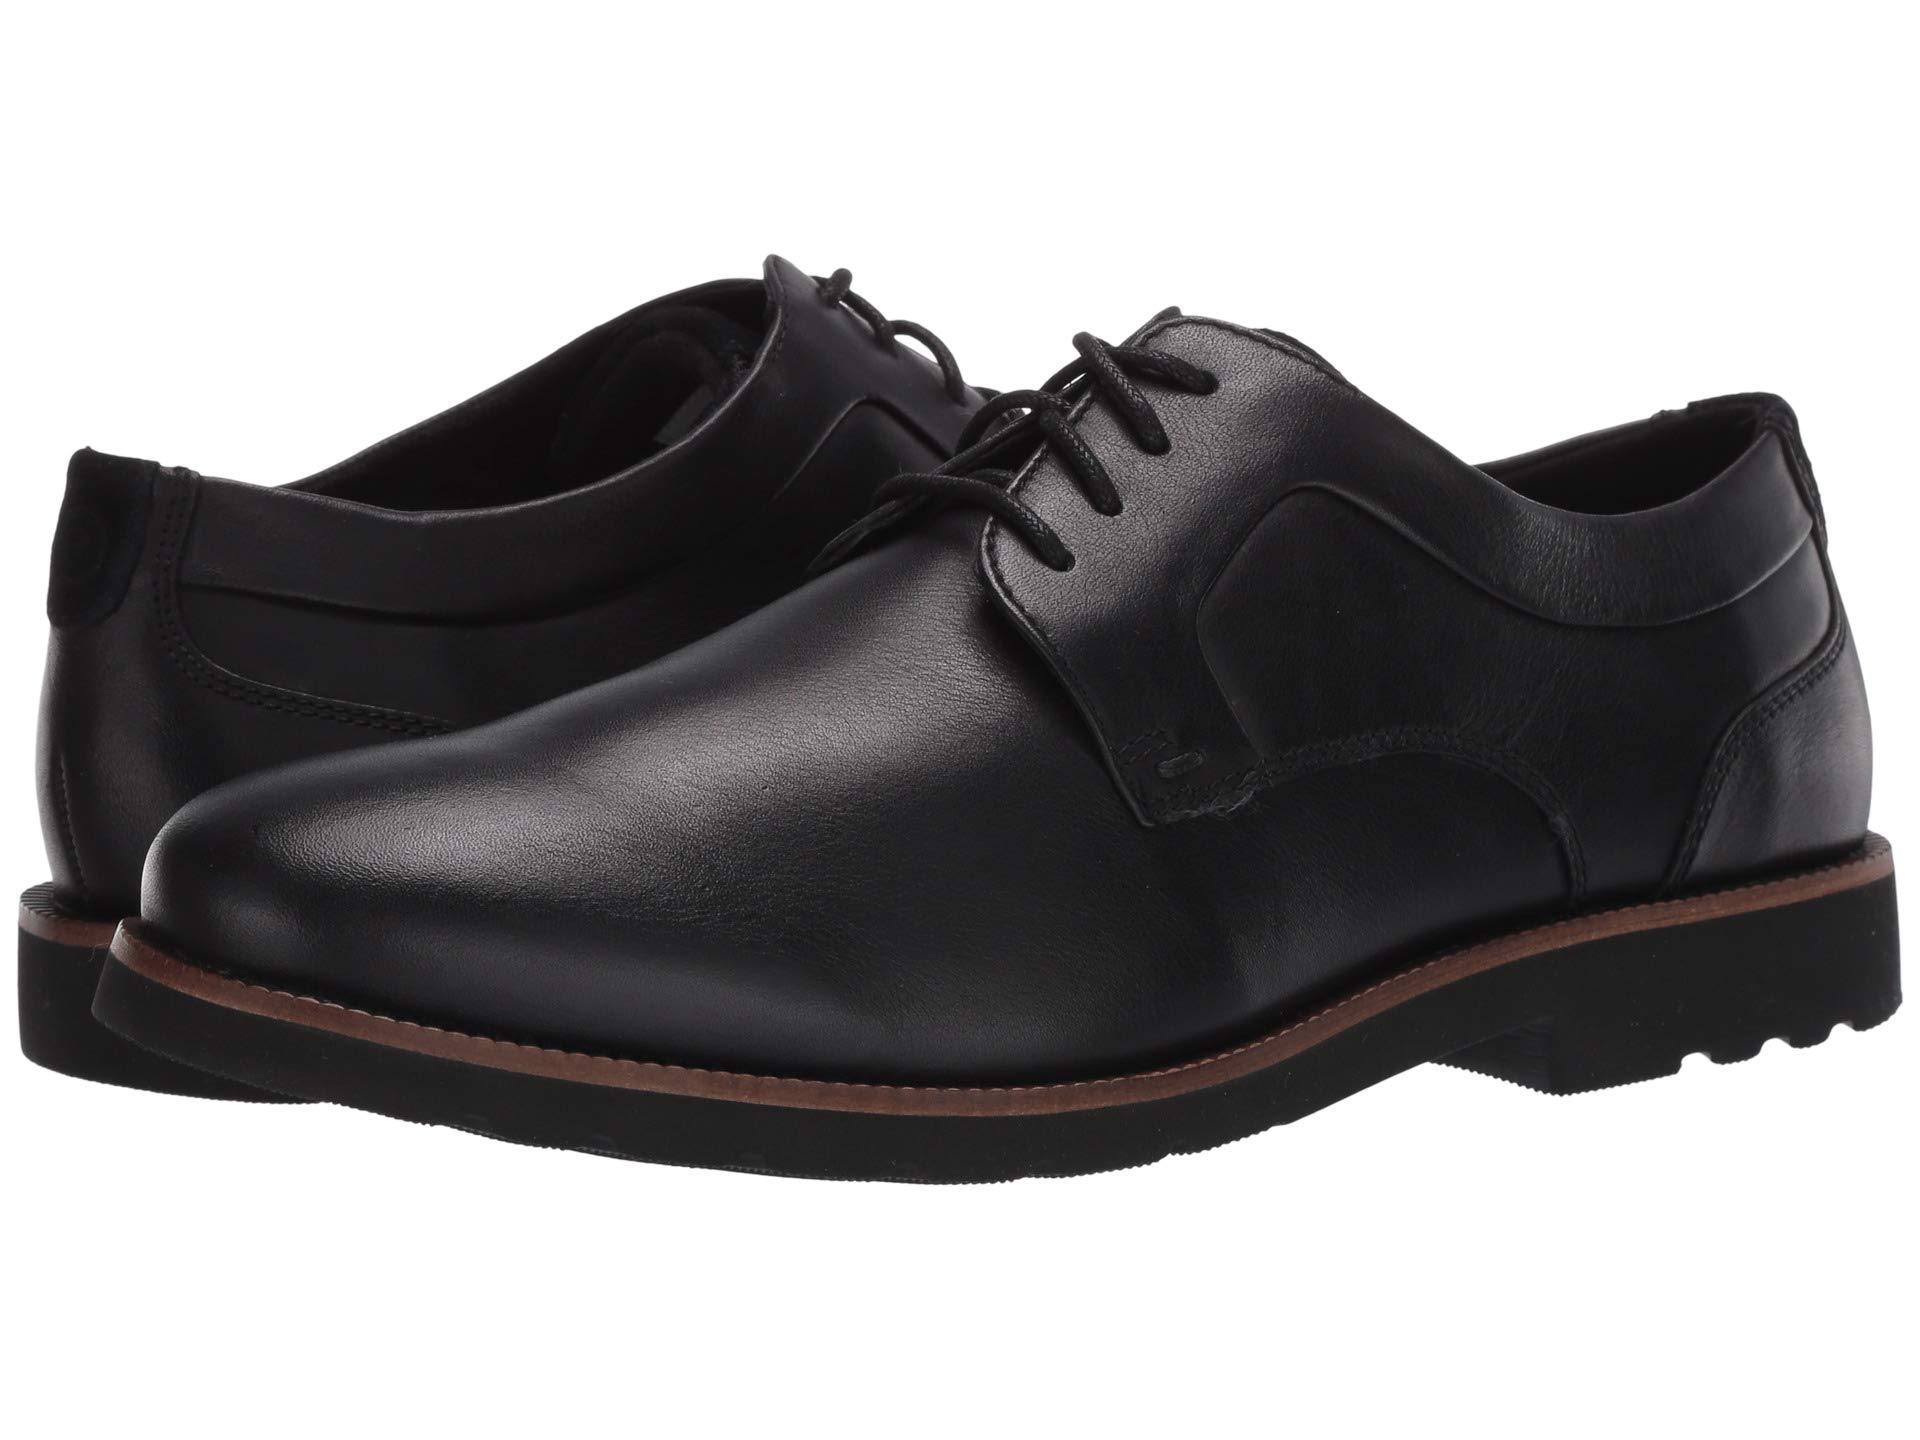 Rockport Sharp and Ready 2 Plain Toe